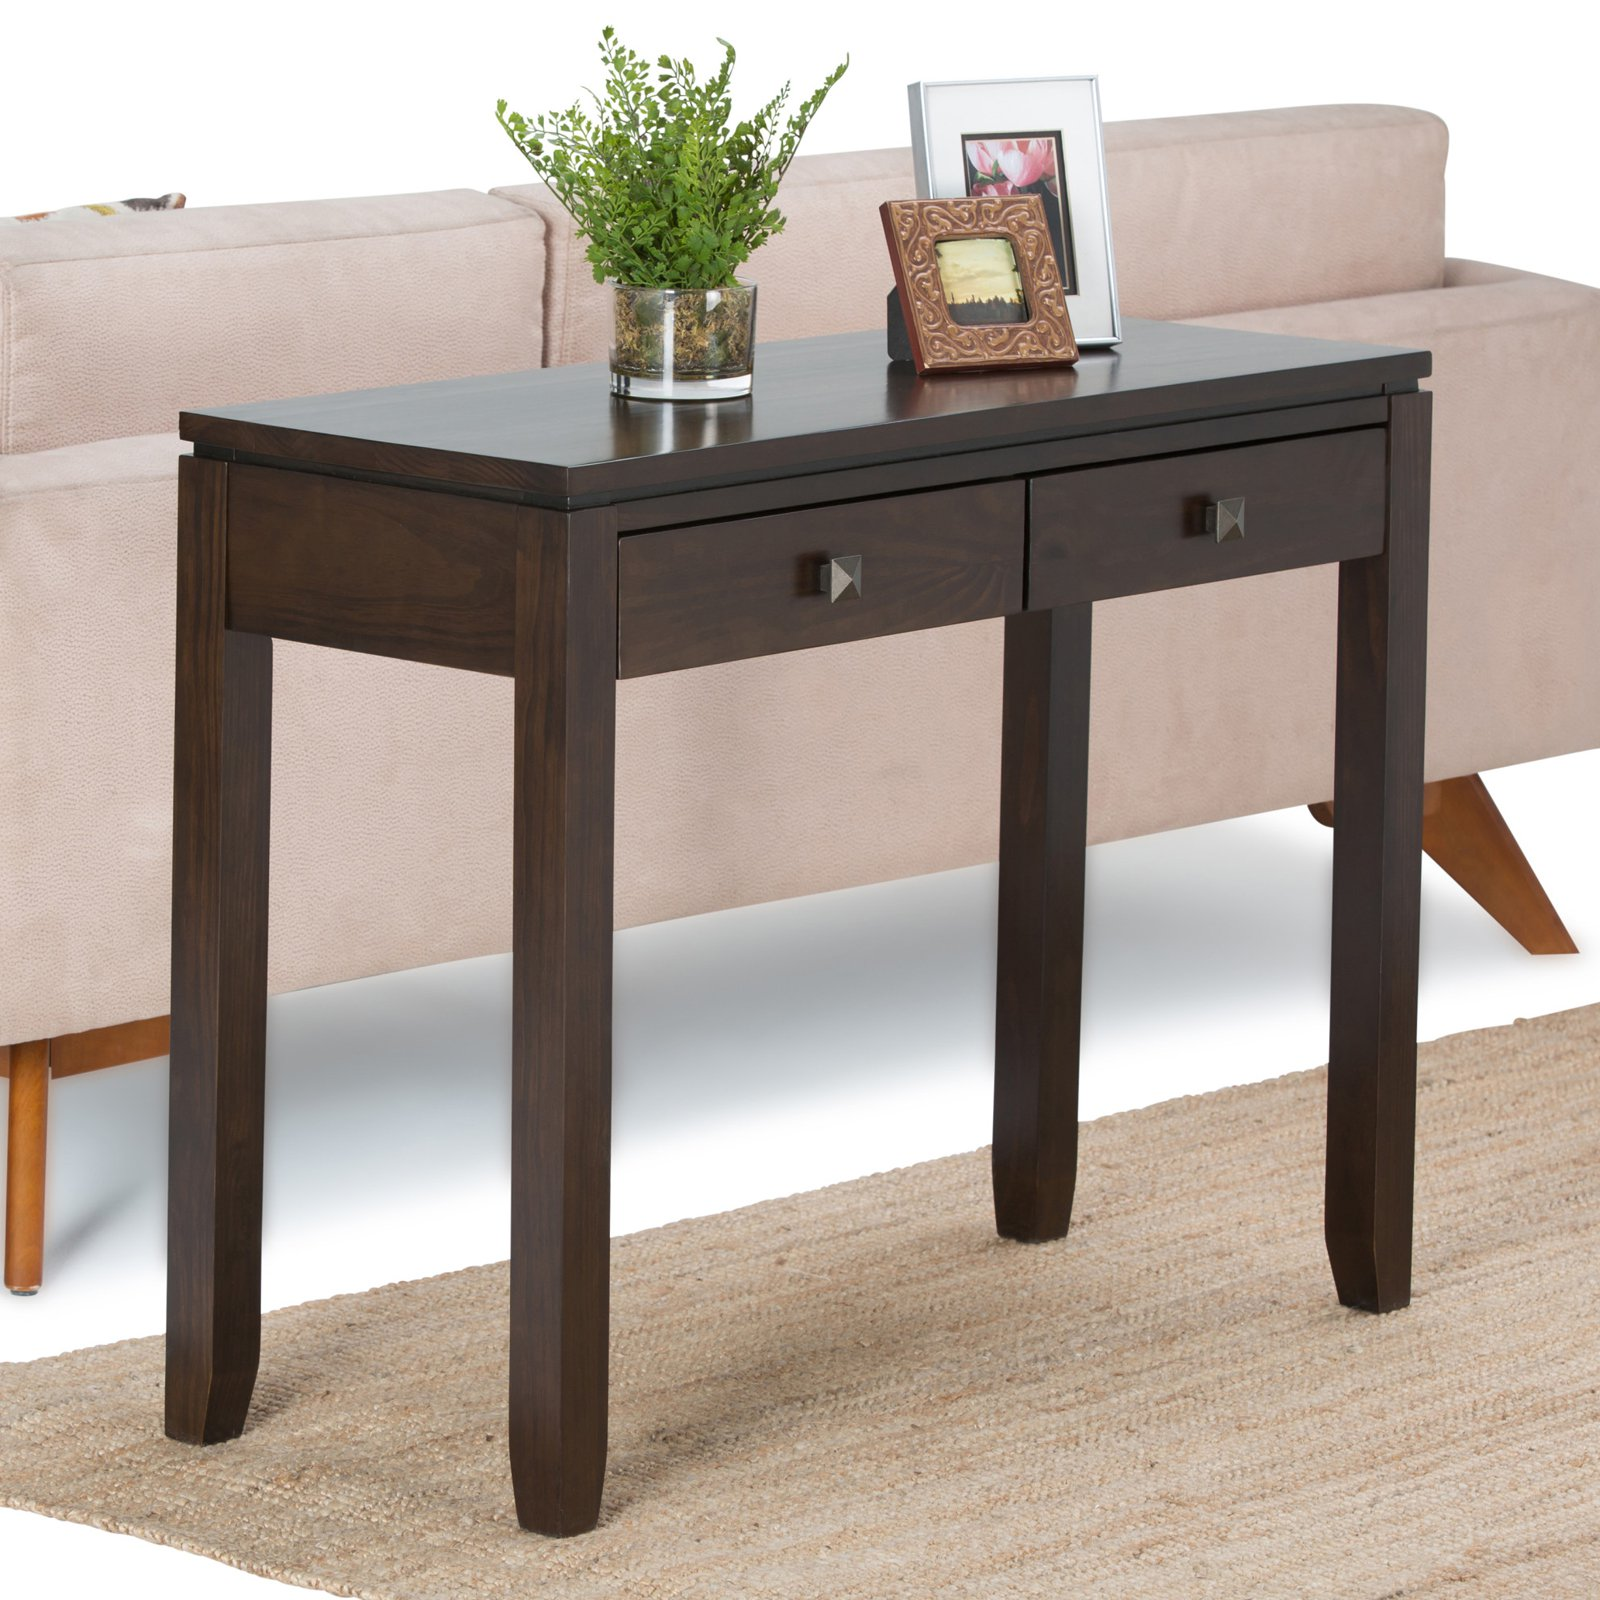 Simpli Home Cosmopolitan Console Sofa Table by CCT Global Sourcing Inc